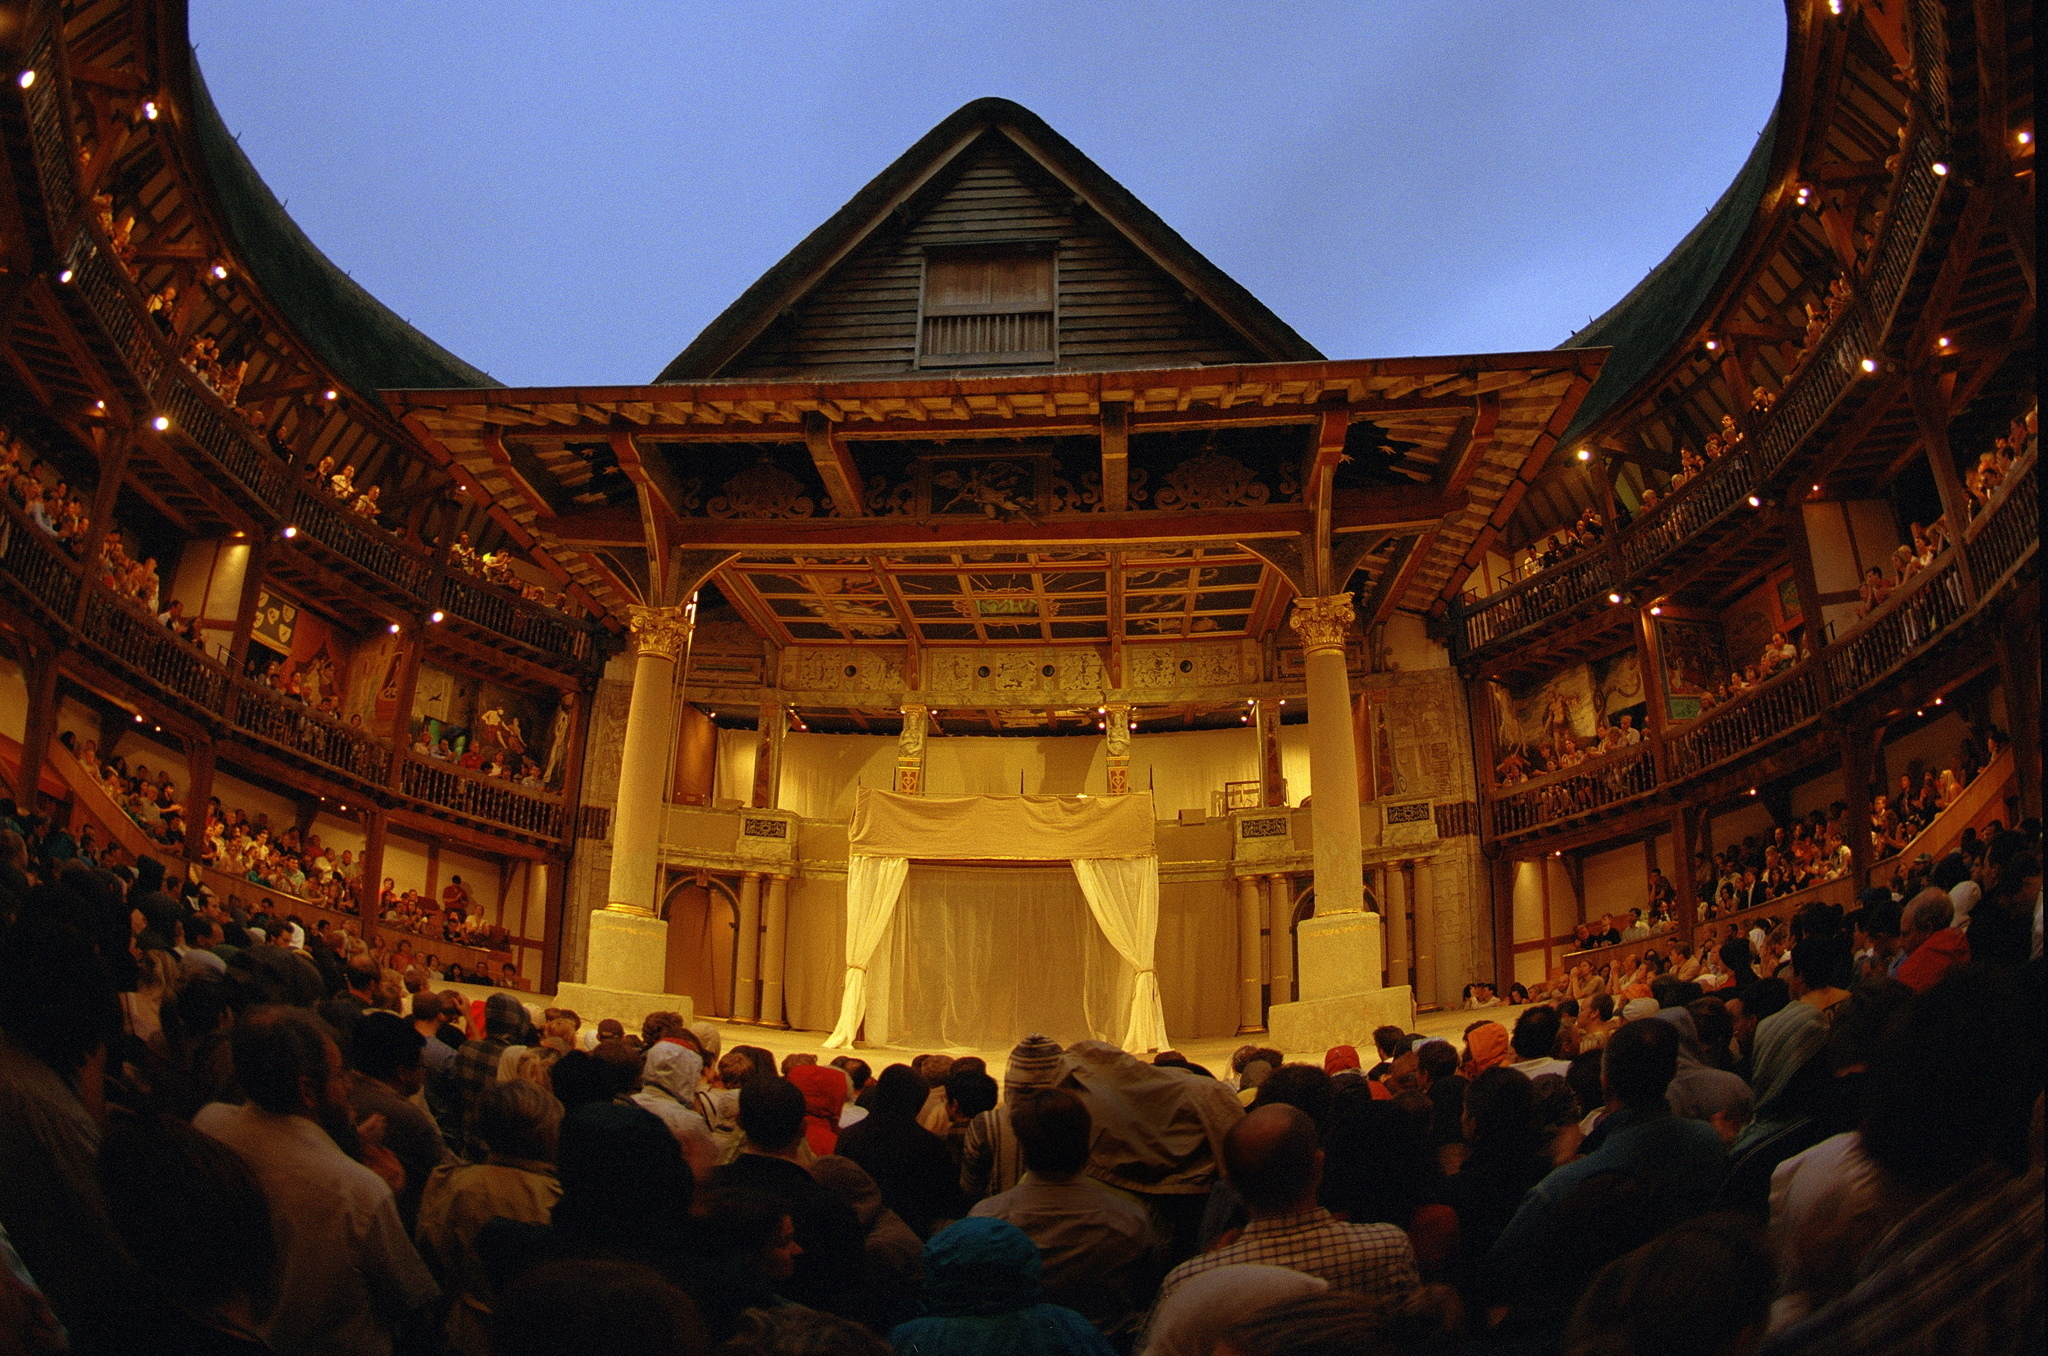 Watch a play Elizabethan-style with a groundling ticket to the Globe